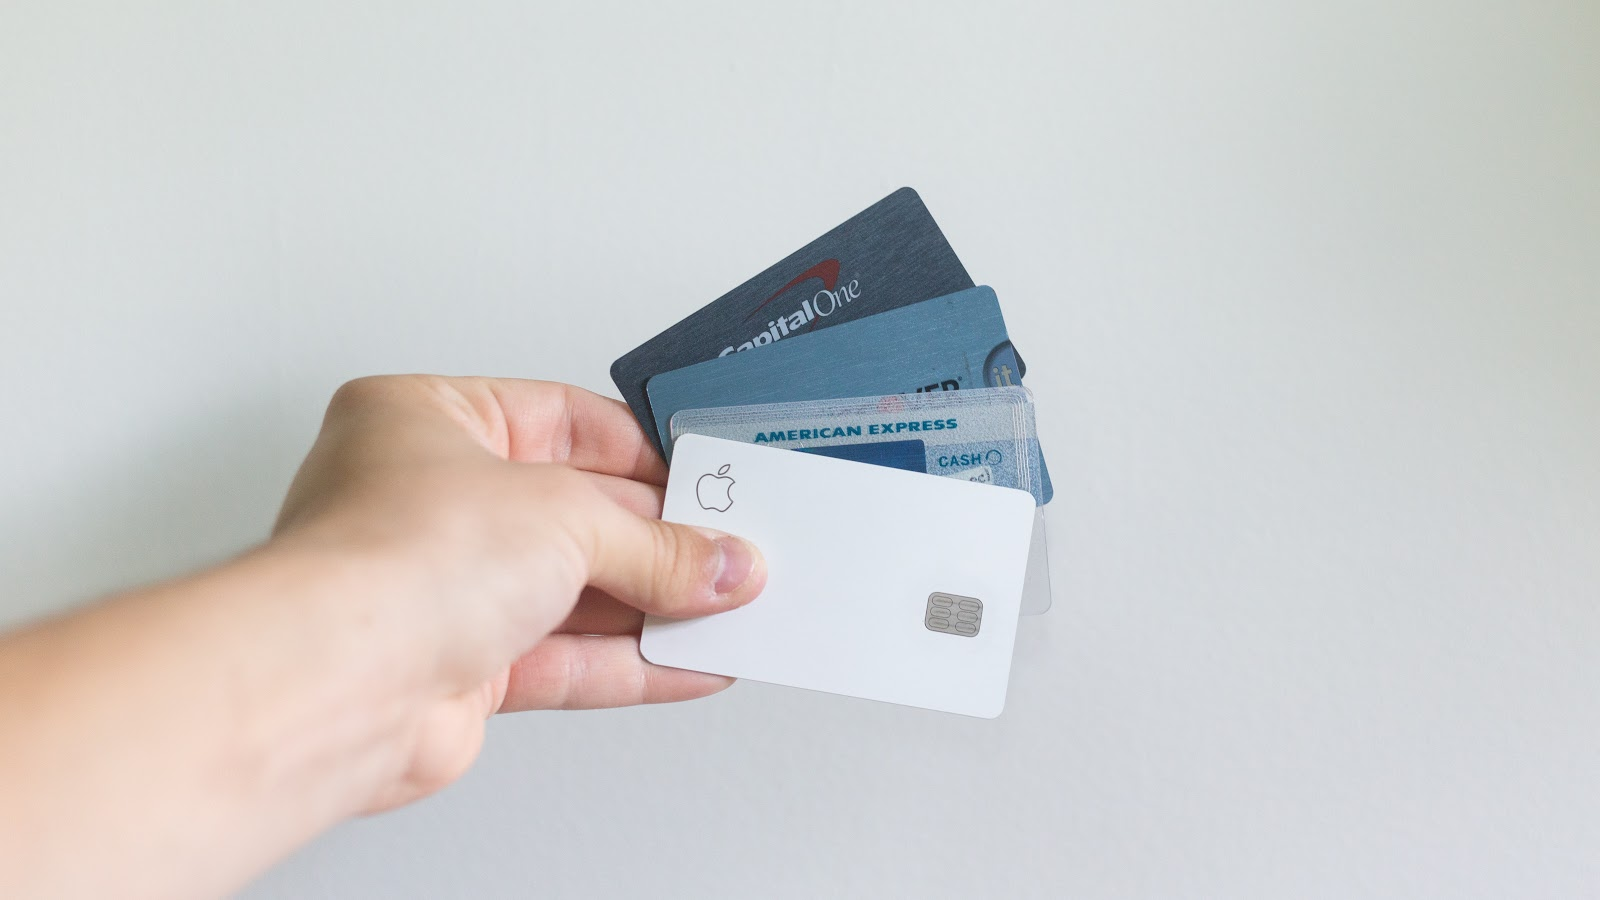 A hand holds four debit cards.